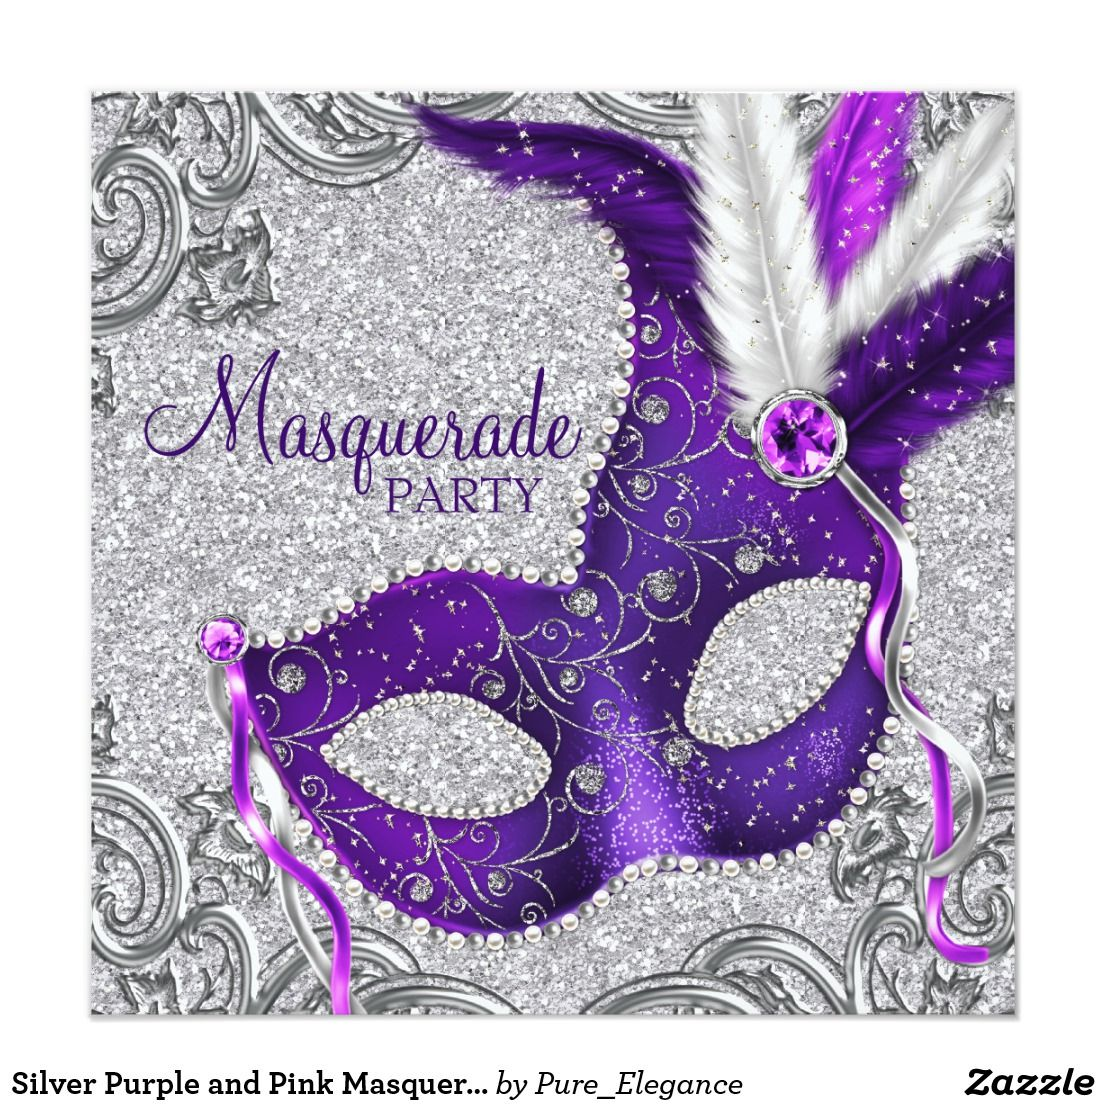 Silver Purple and Pink Masquerade Party Card | Masquerade party ...